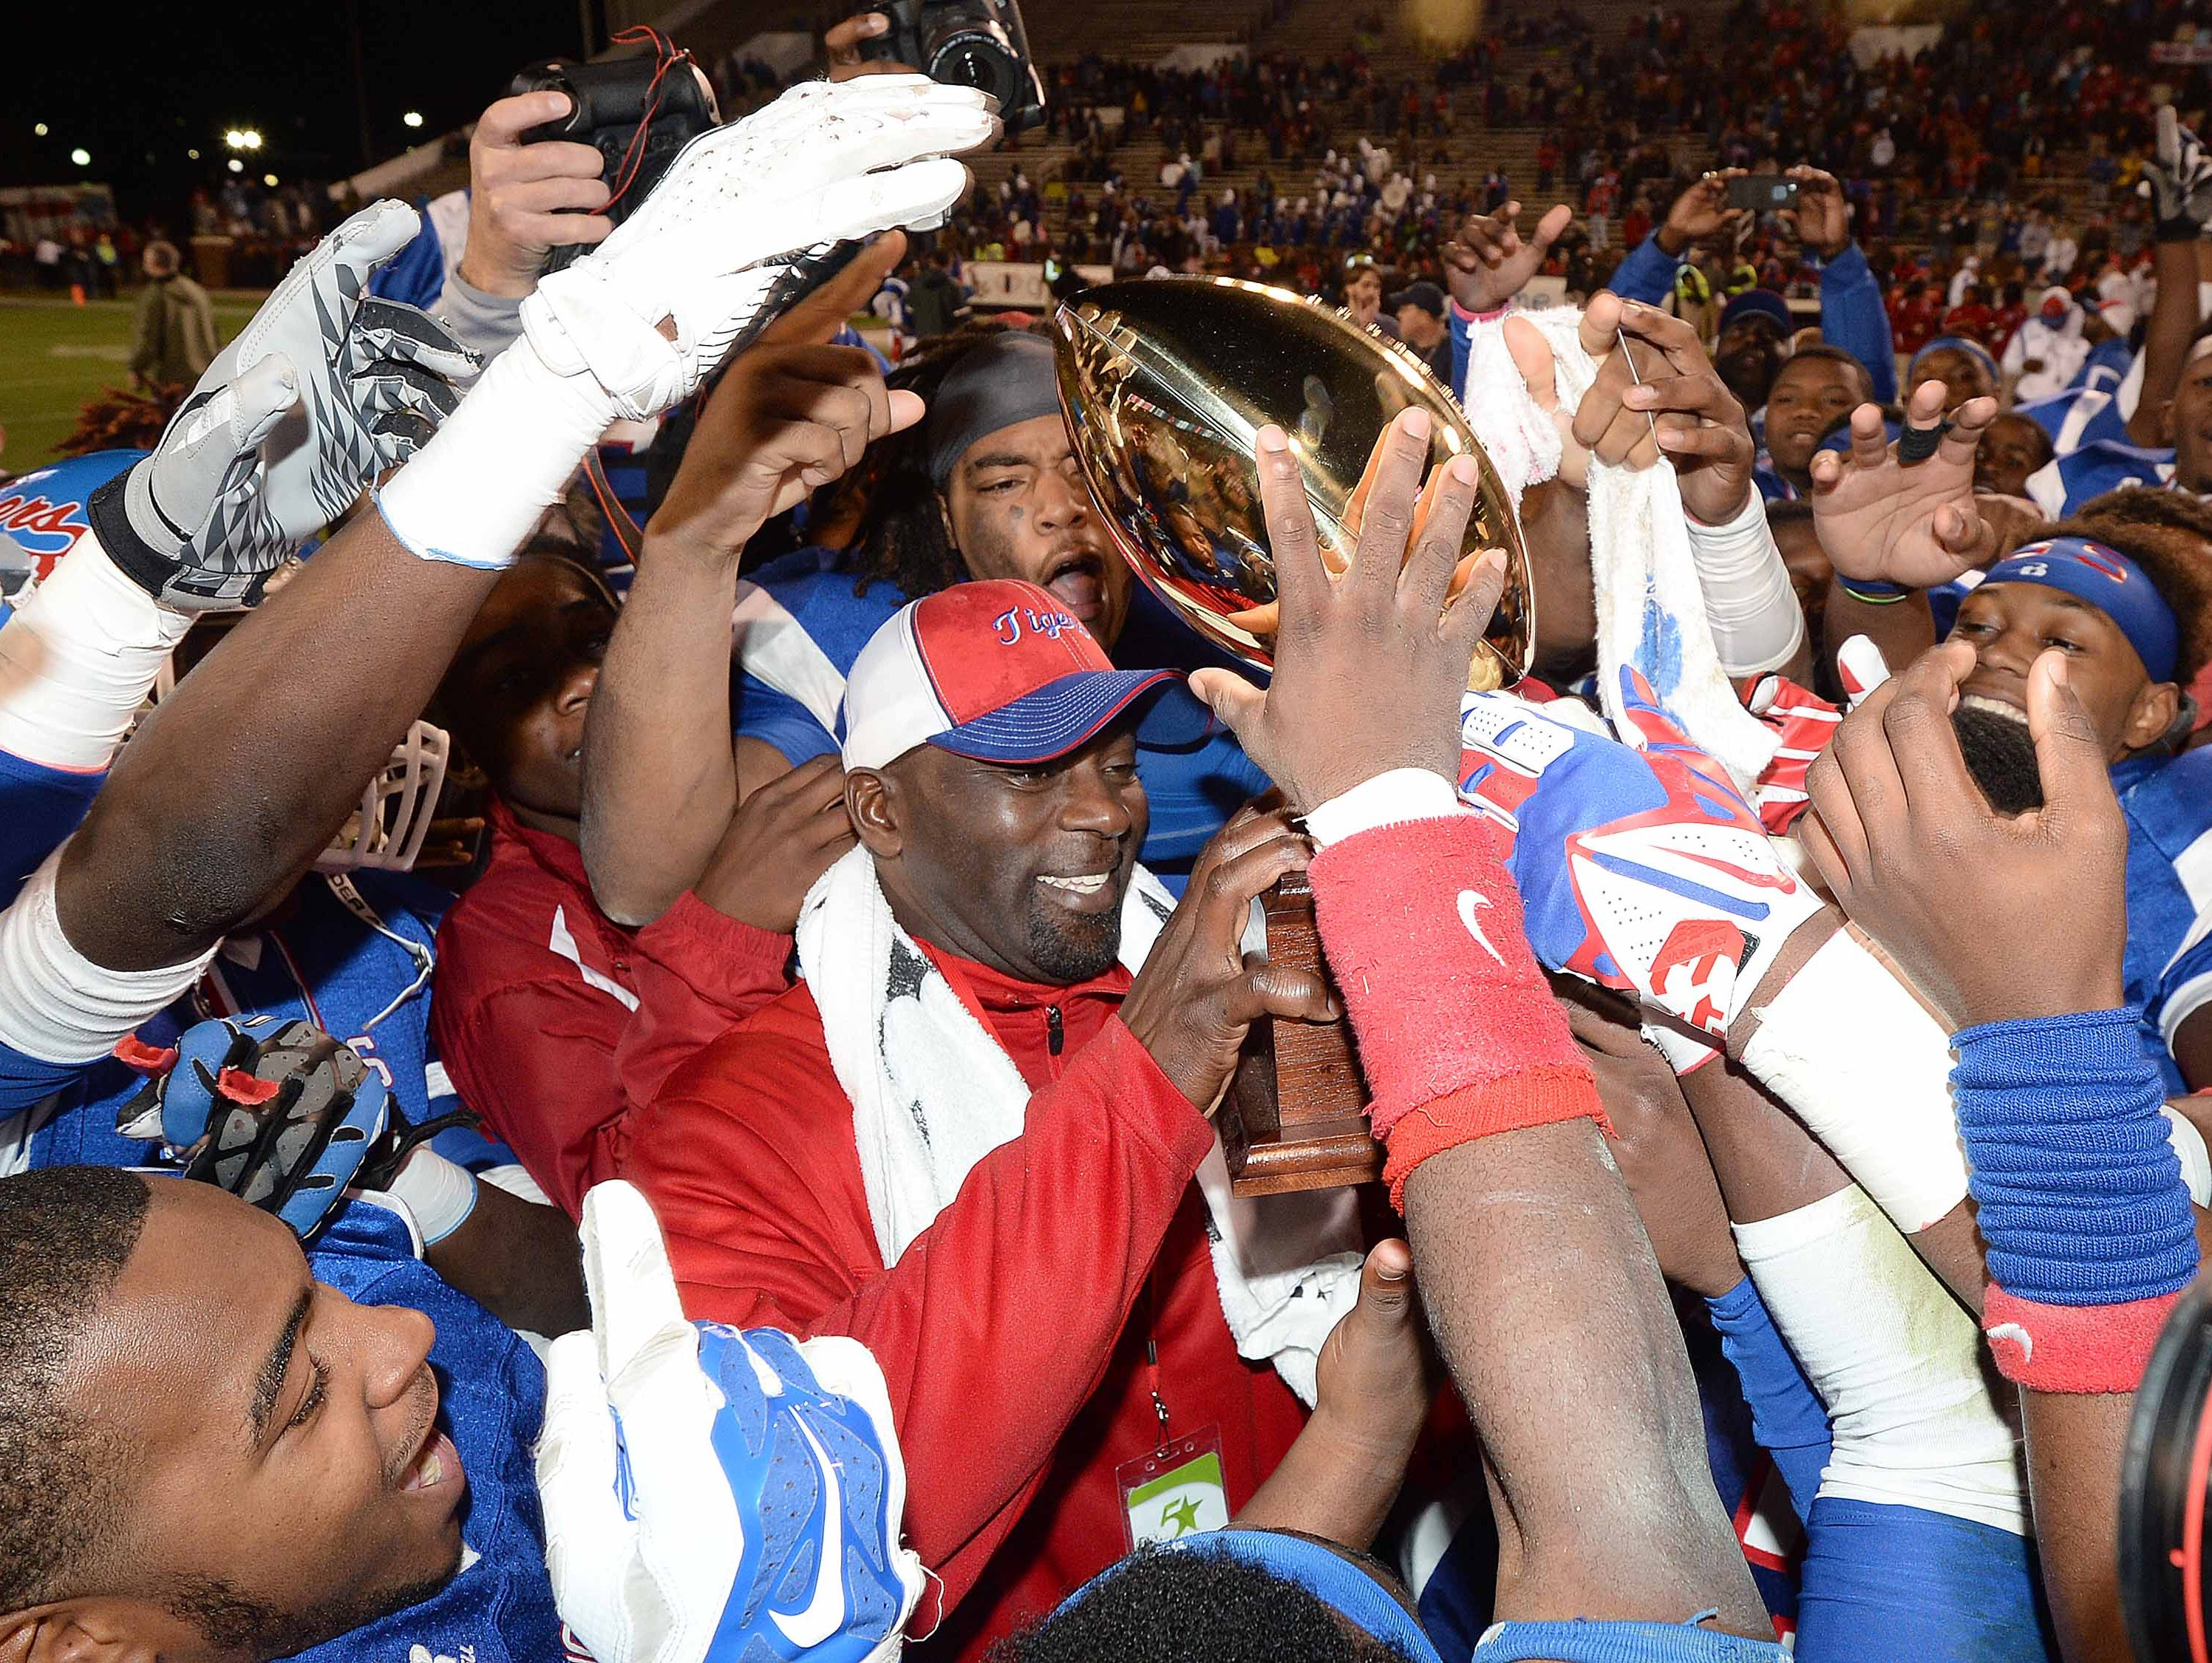 Tyrone Shorter and Noxubee County look for their third title in four years when they face St. Stanislaus in the Class 4A championship.